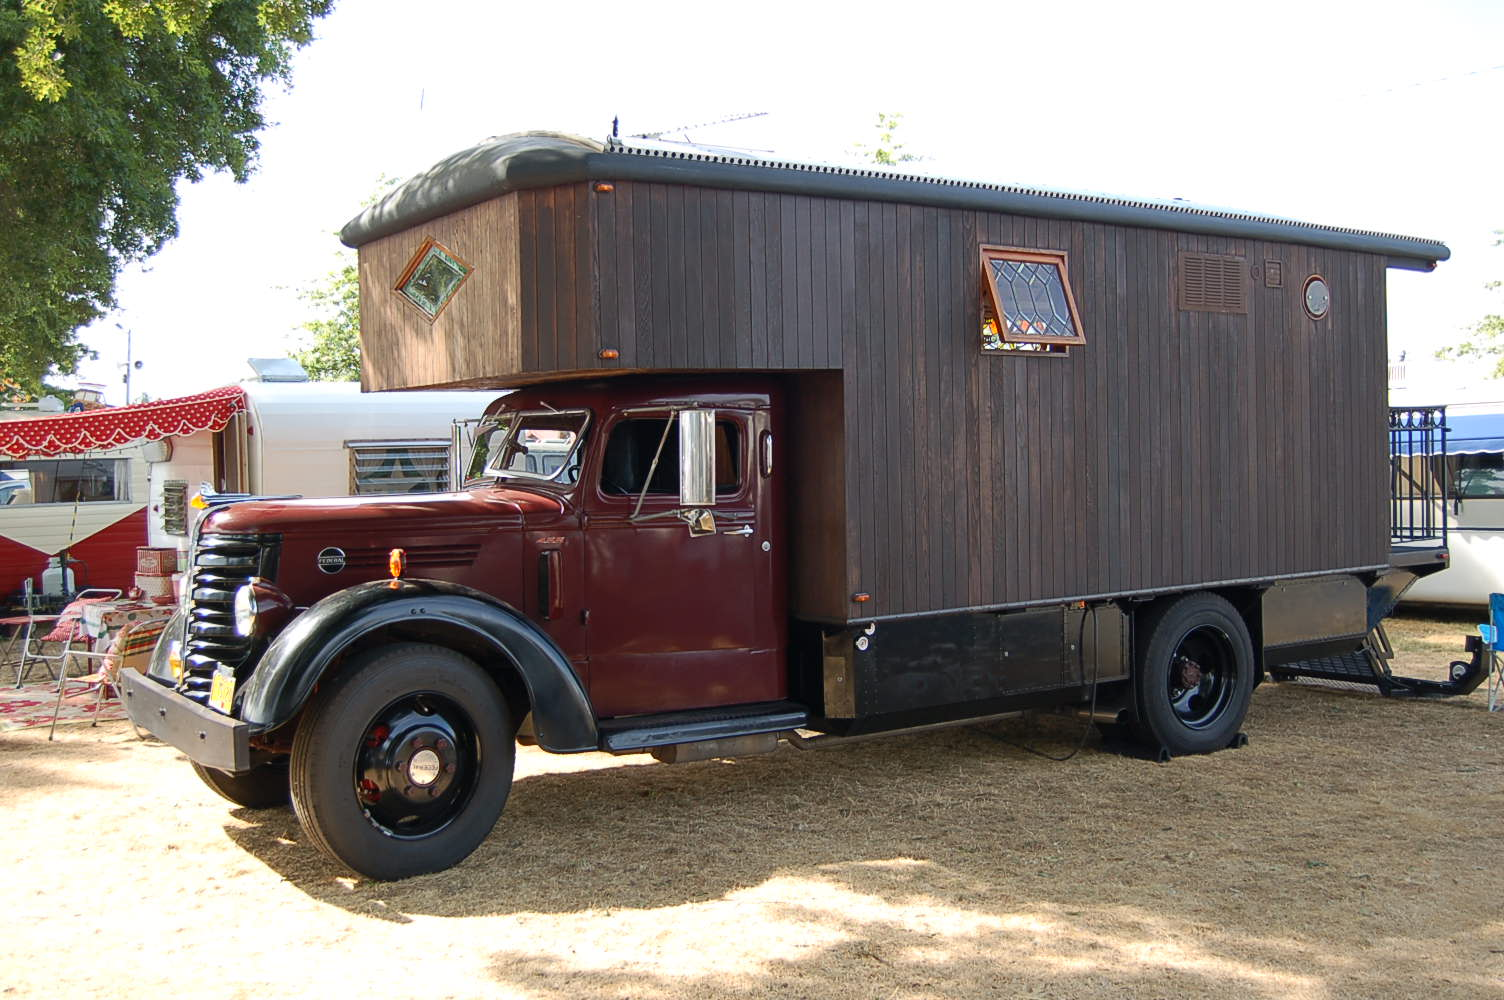 Heavy Duty 1959 Federal Truck Cab And Chassis With A Huge Custom Camper Built On The